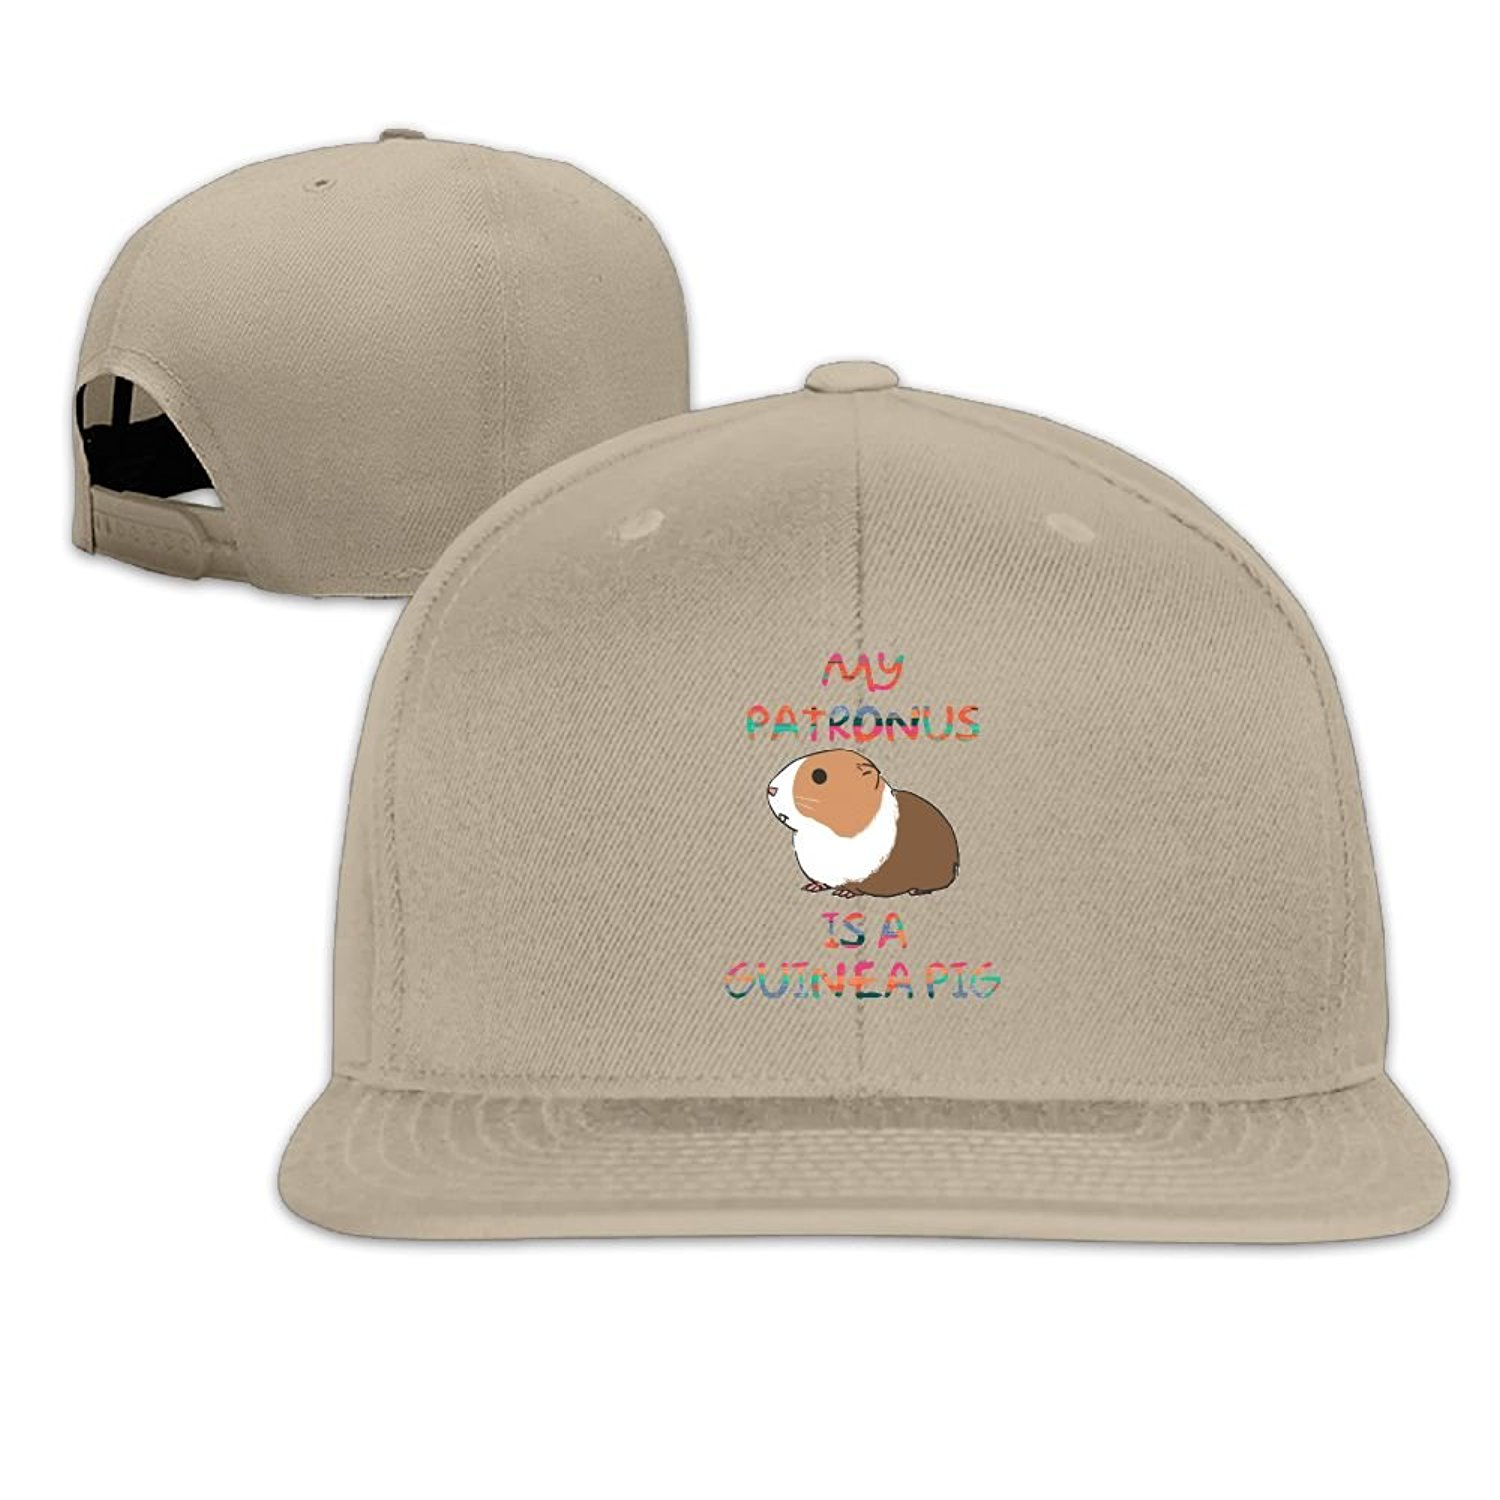 22de0f521ae Get Quotations · Yzksgy Cap My Patronus Is A Guinea Pig Cartoon Mens  Classic Flat Cap Snapback Graphic Flat